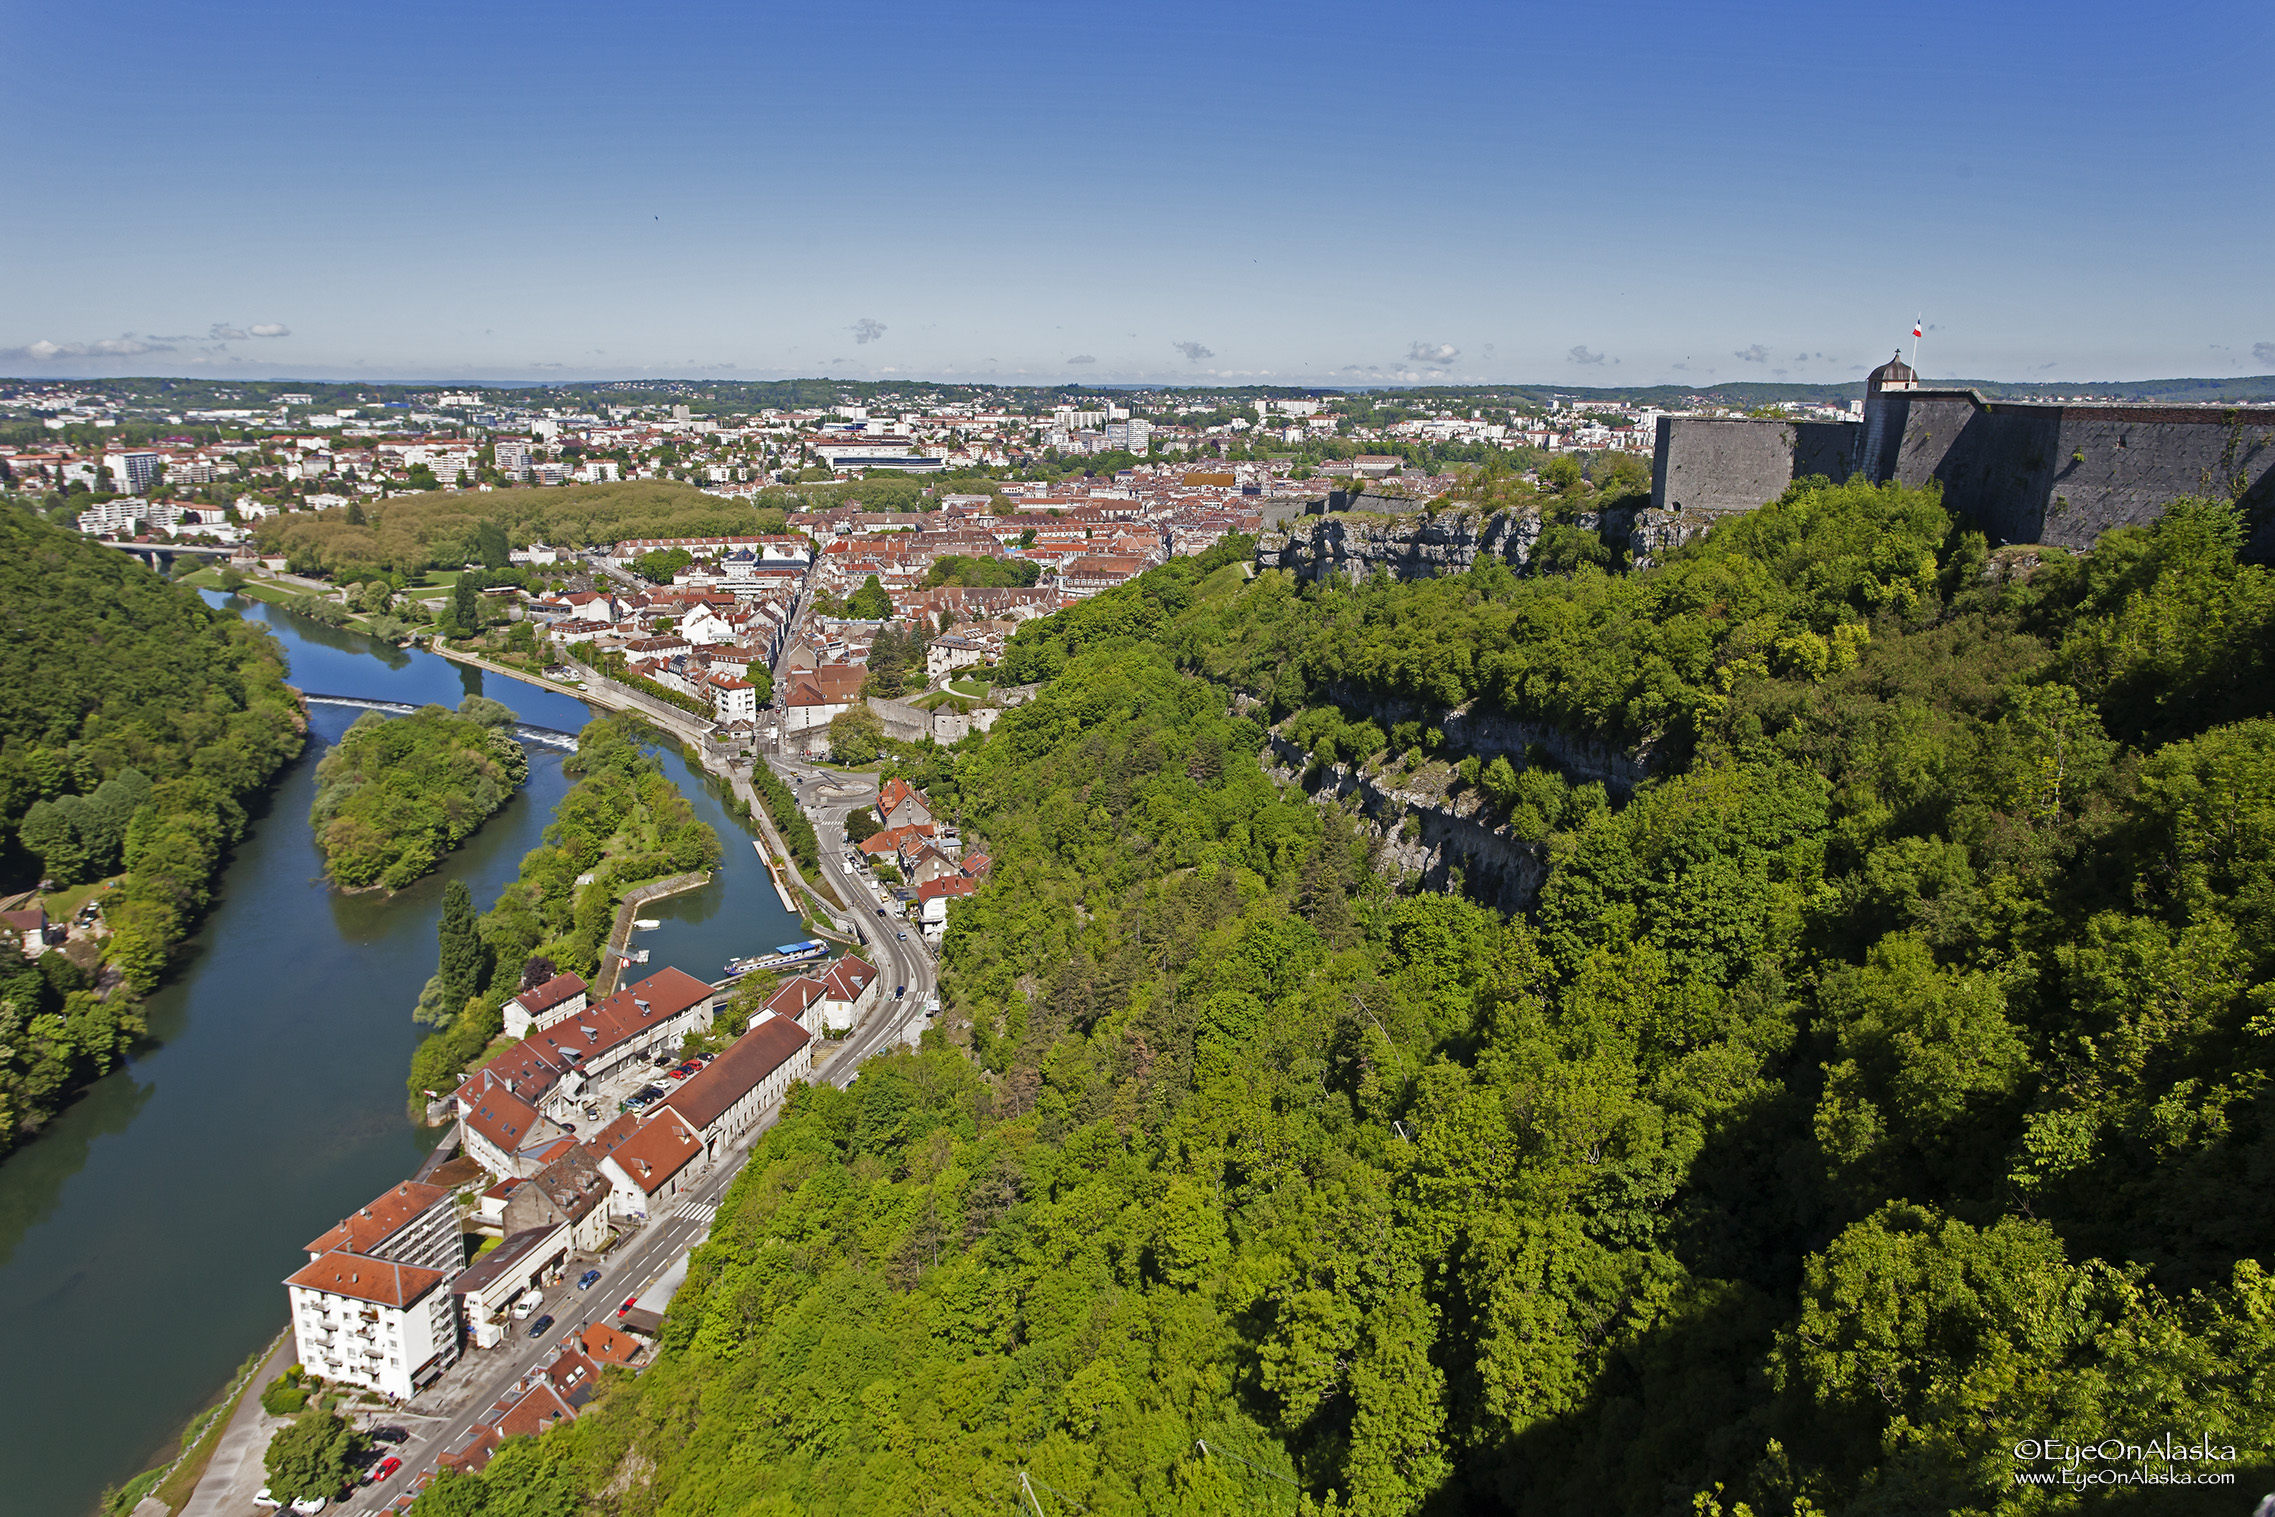 The other side of Besançon from the parapets.